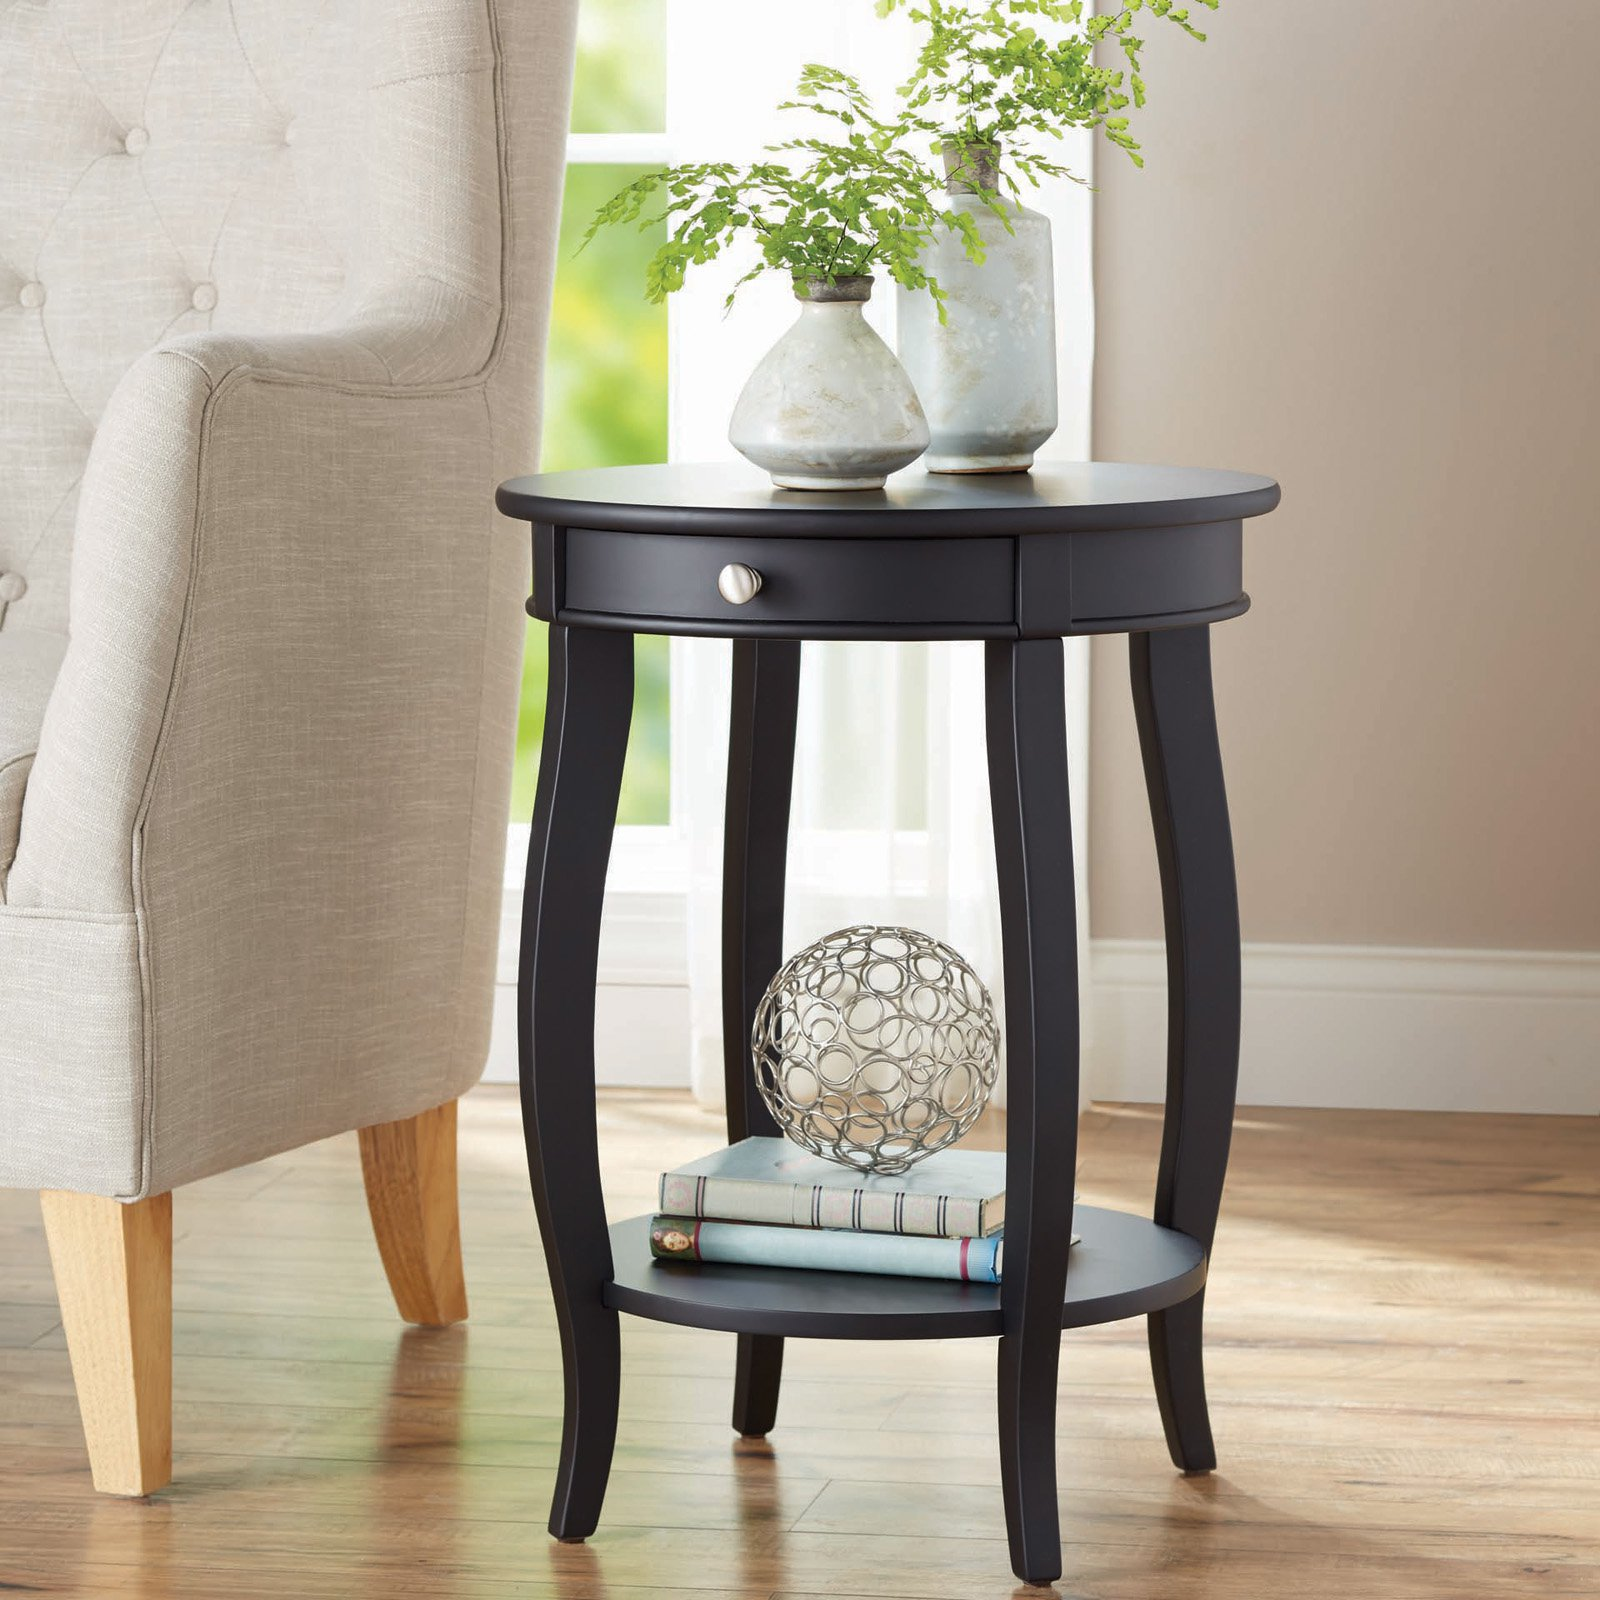 better homes gardens round accent table with drawer multiple distressed black colors patio and chairs marble dining room tablecloth rose gold desk lamp decorative accessories teal